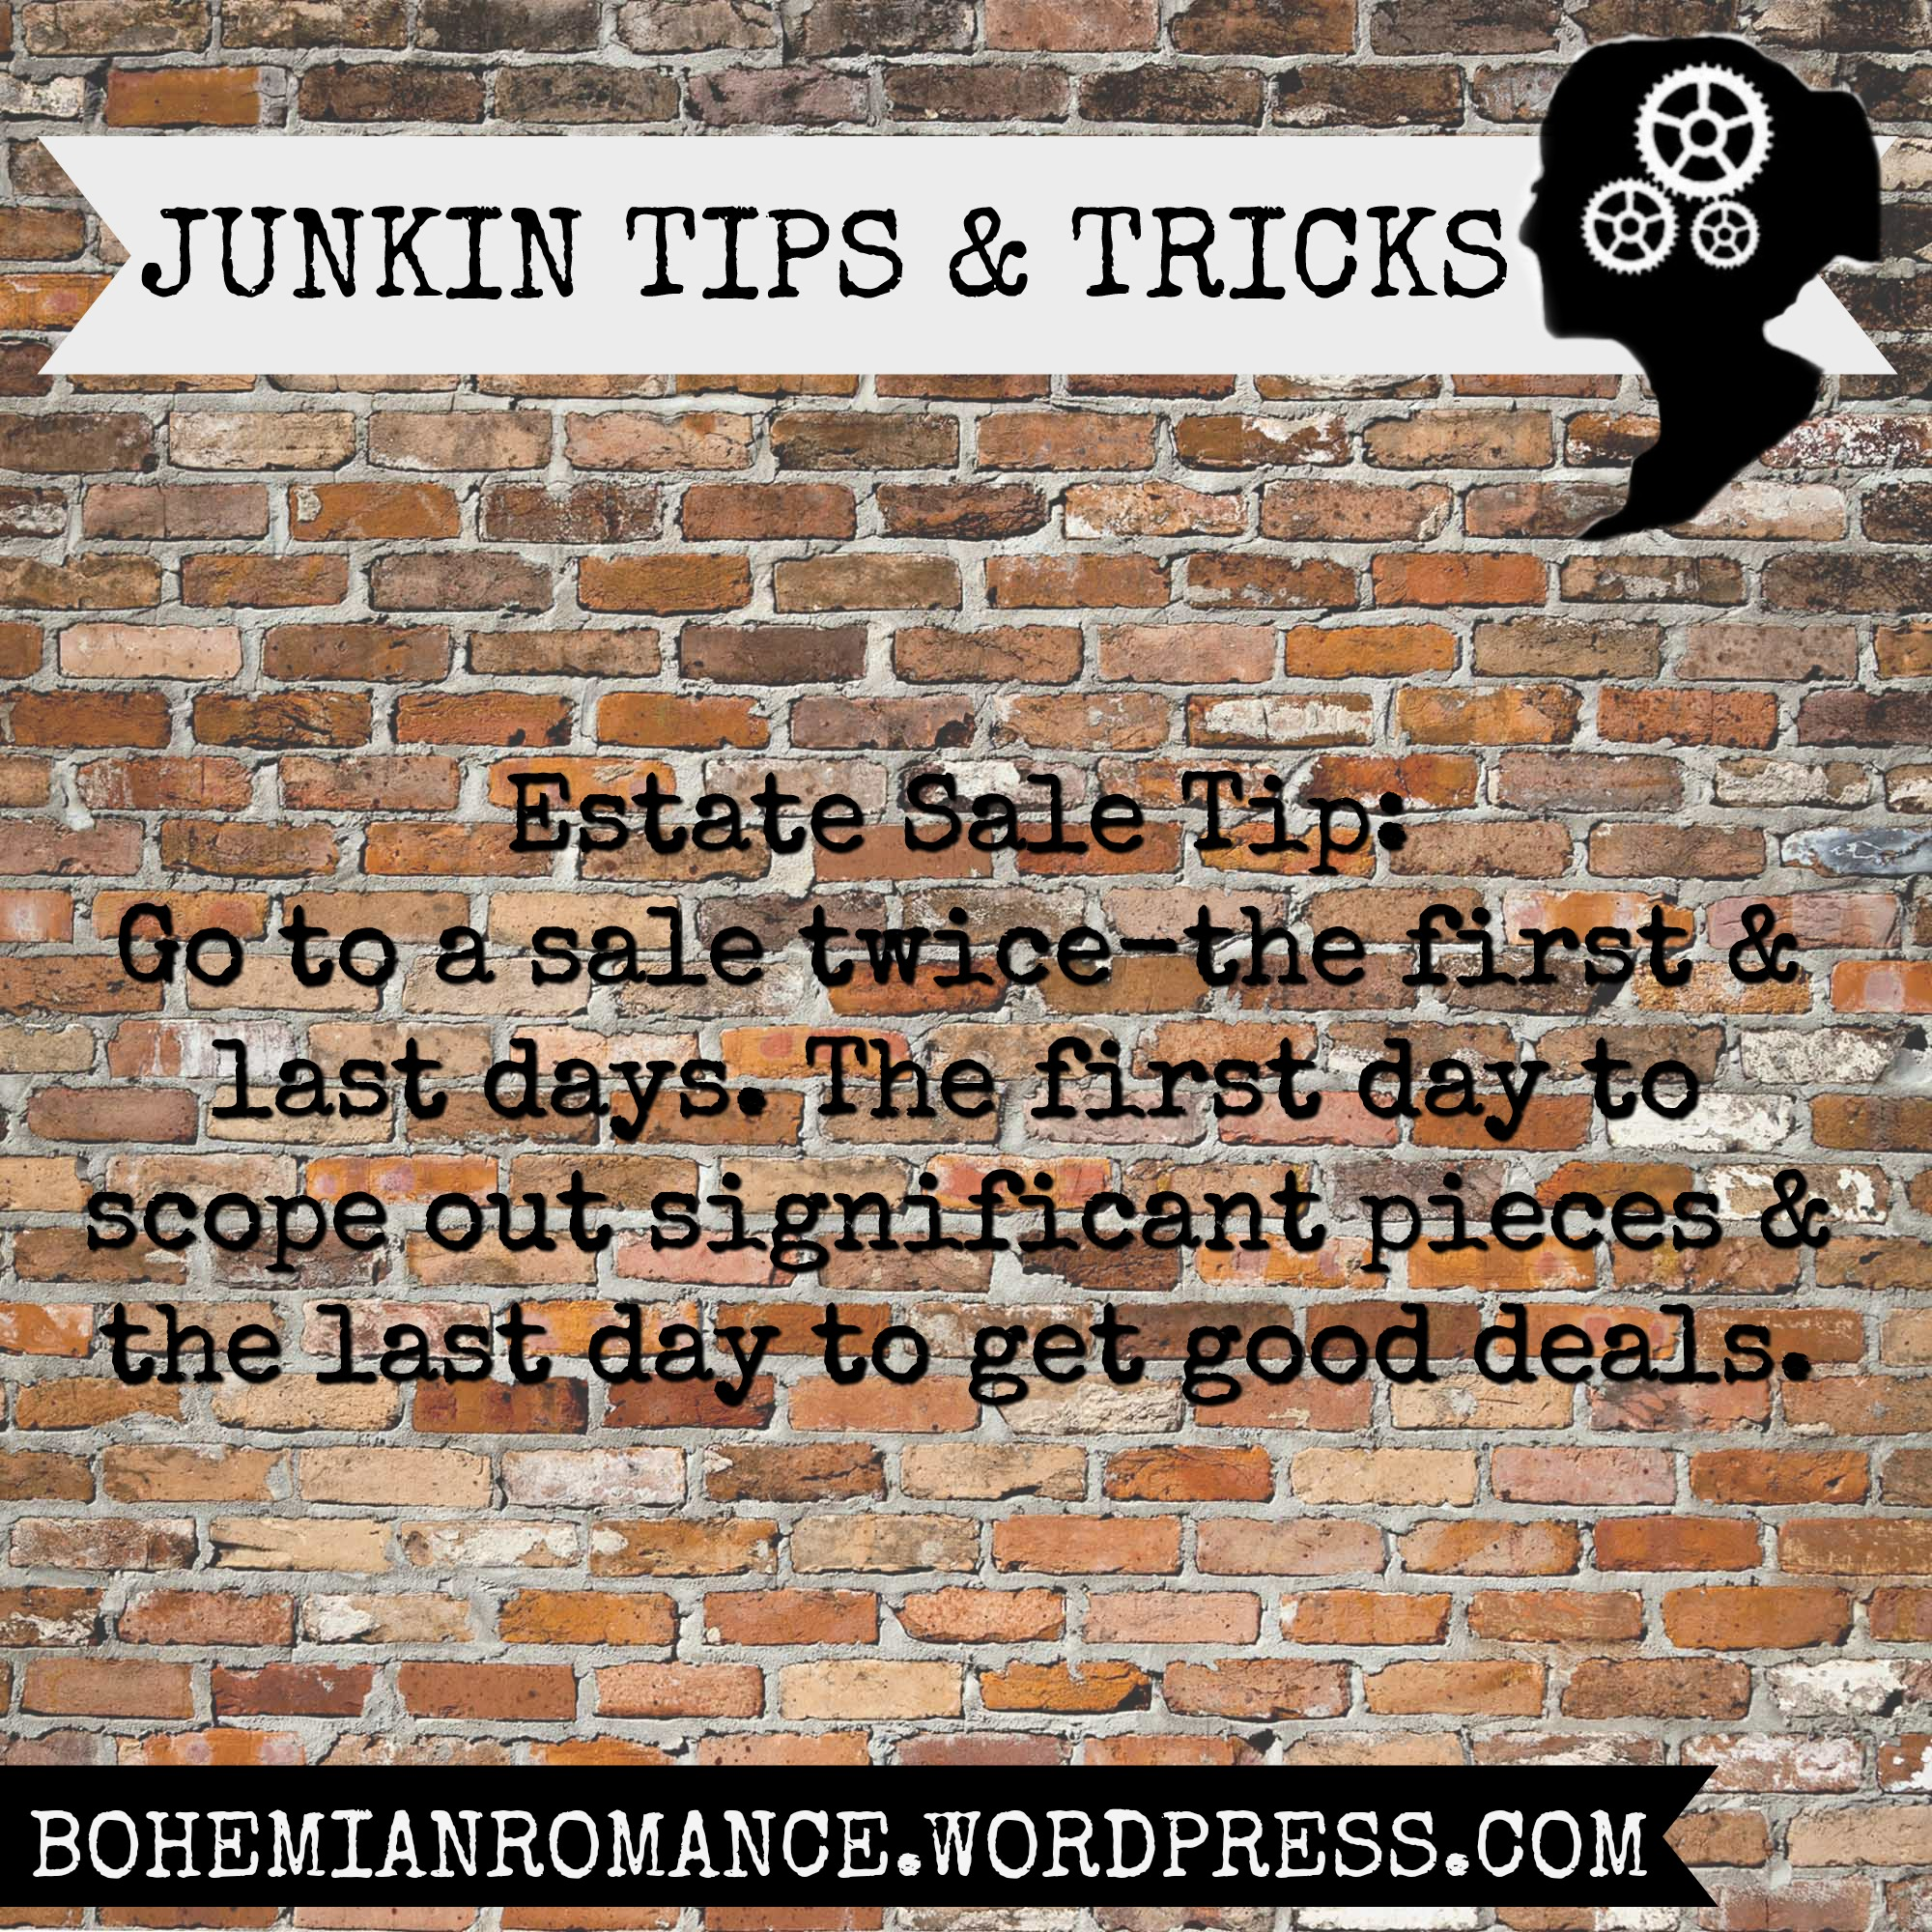 6-junkin-tips-tricks-template